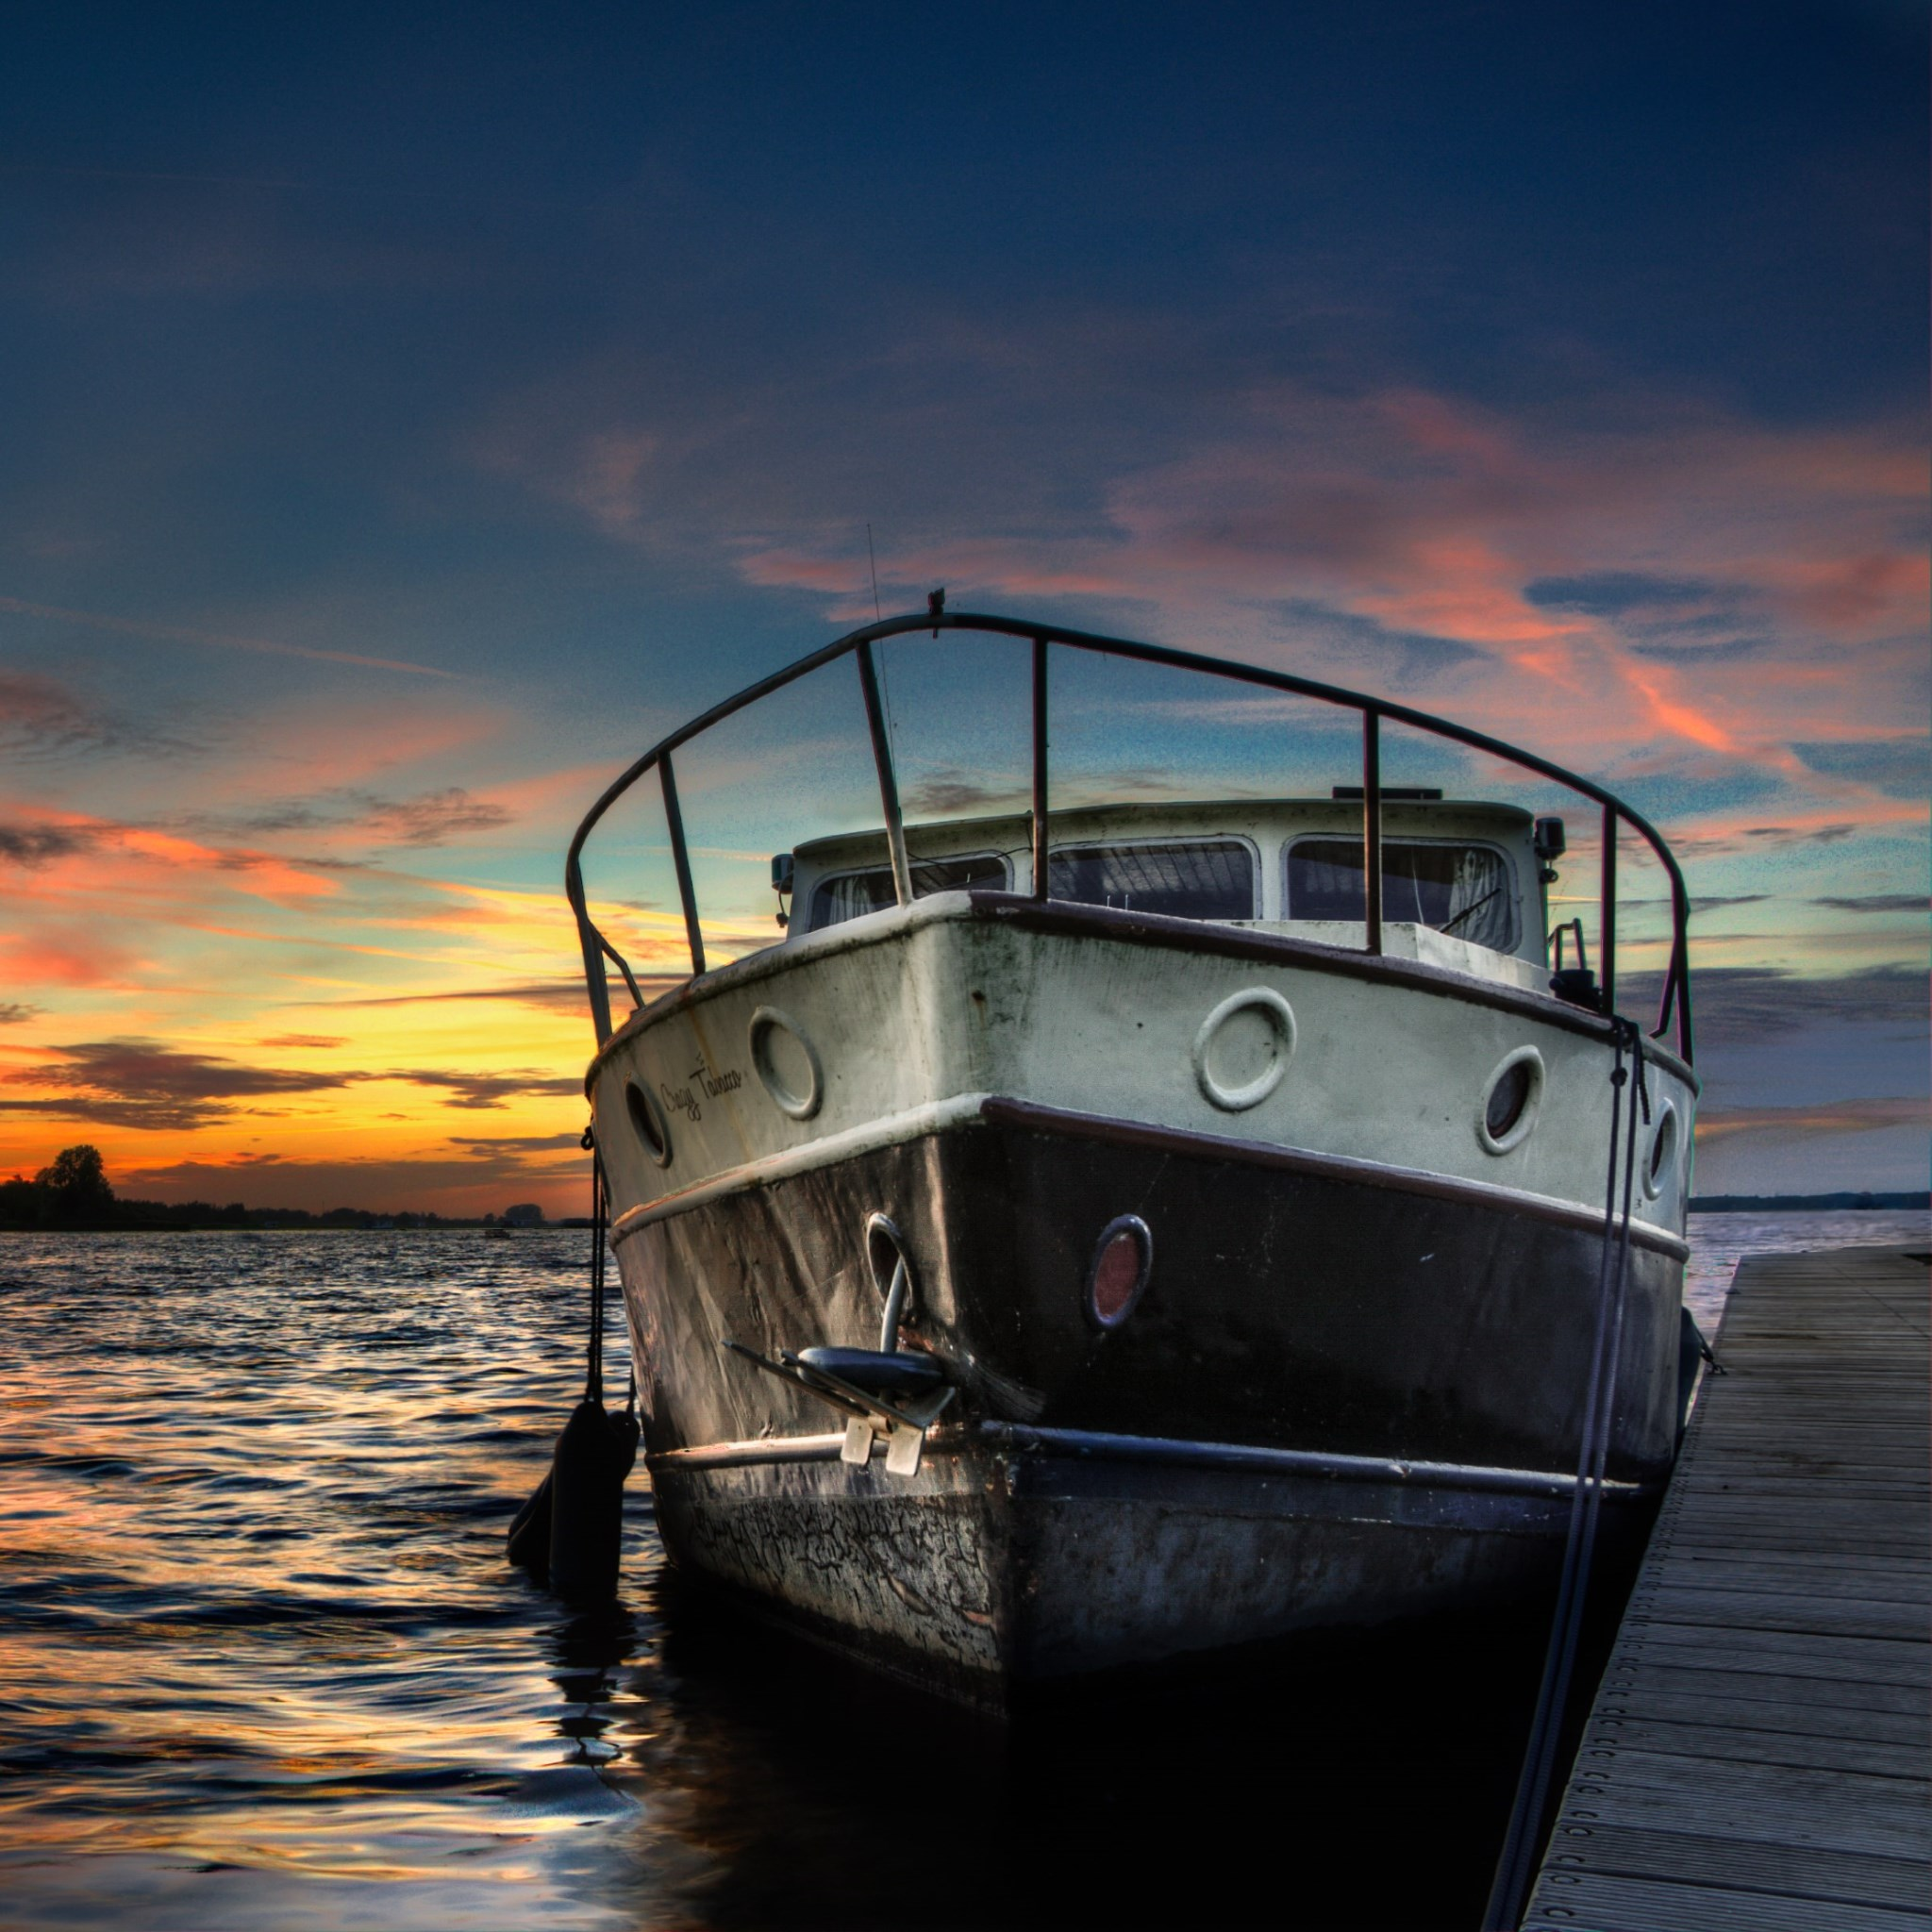 Boat and sunset in background wallpaper 2048x2048